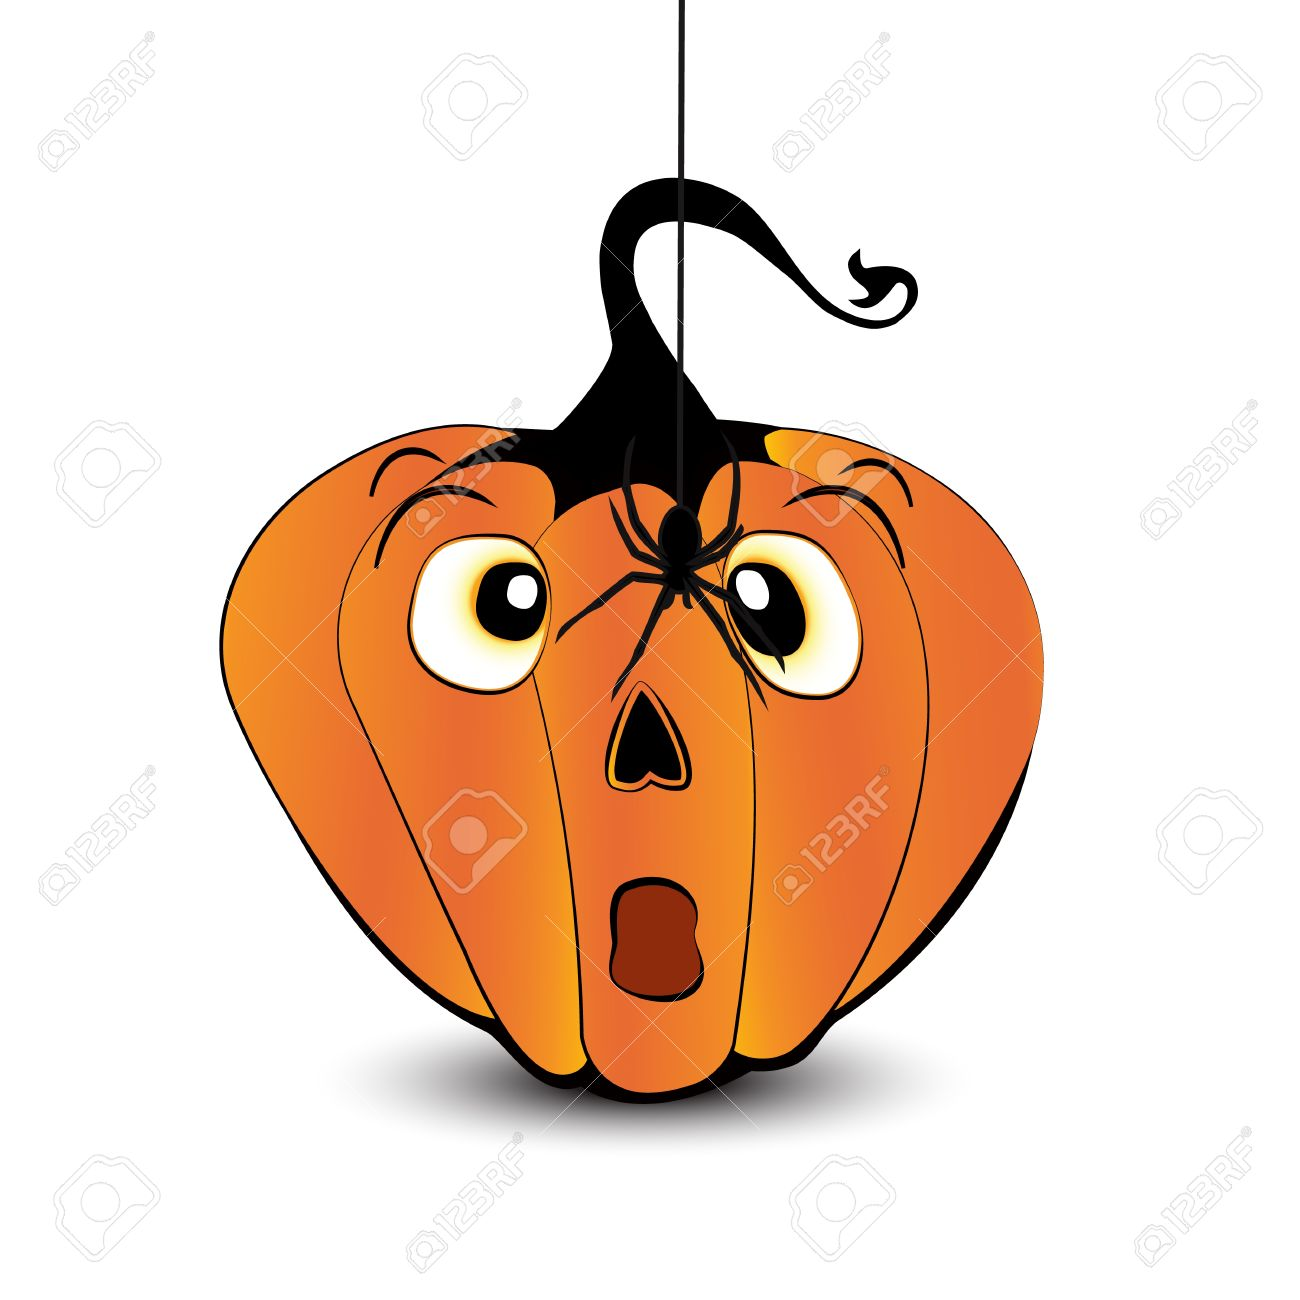 Scared Pumpkin Face With A Spider Isolated On White Background.